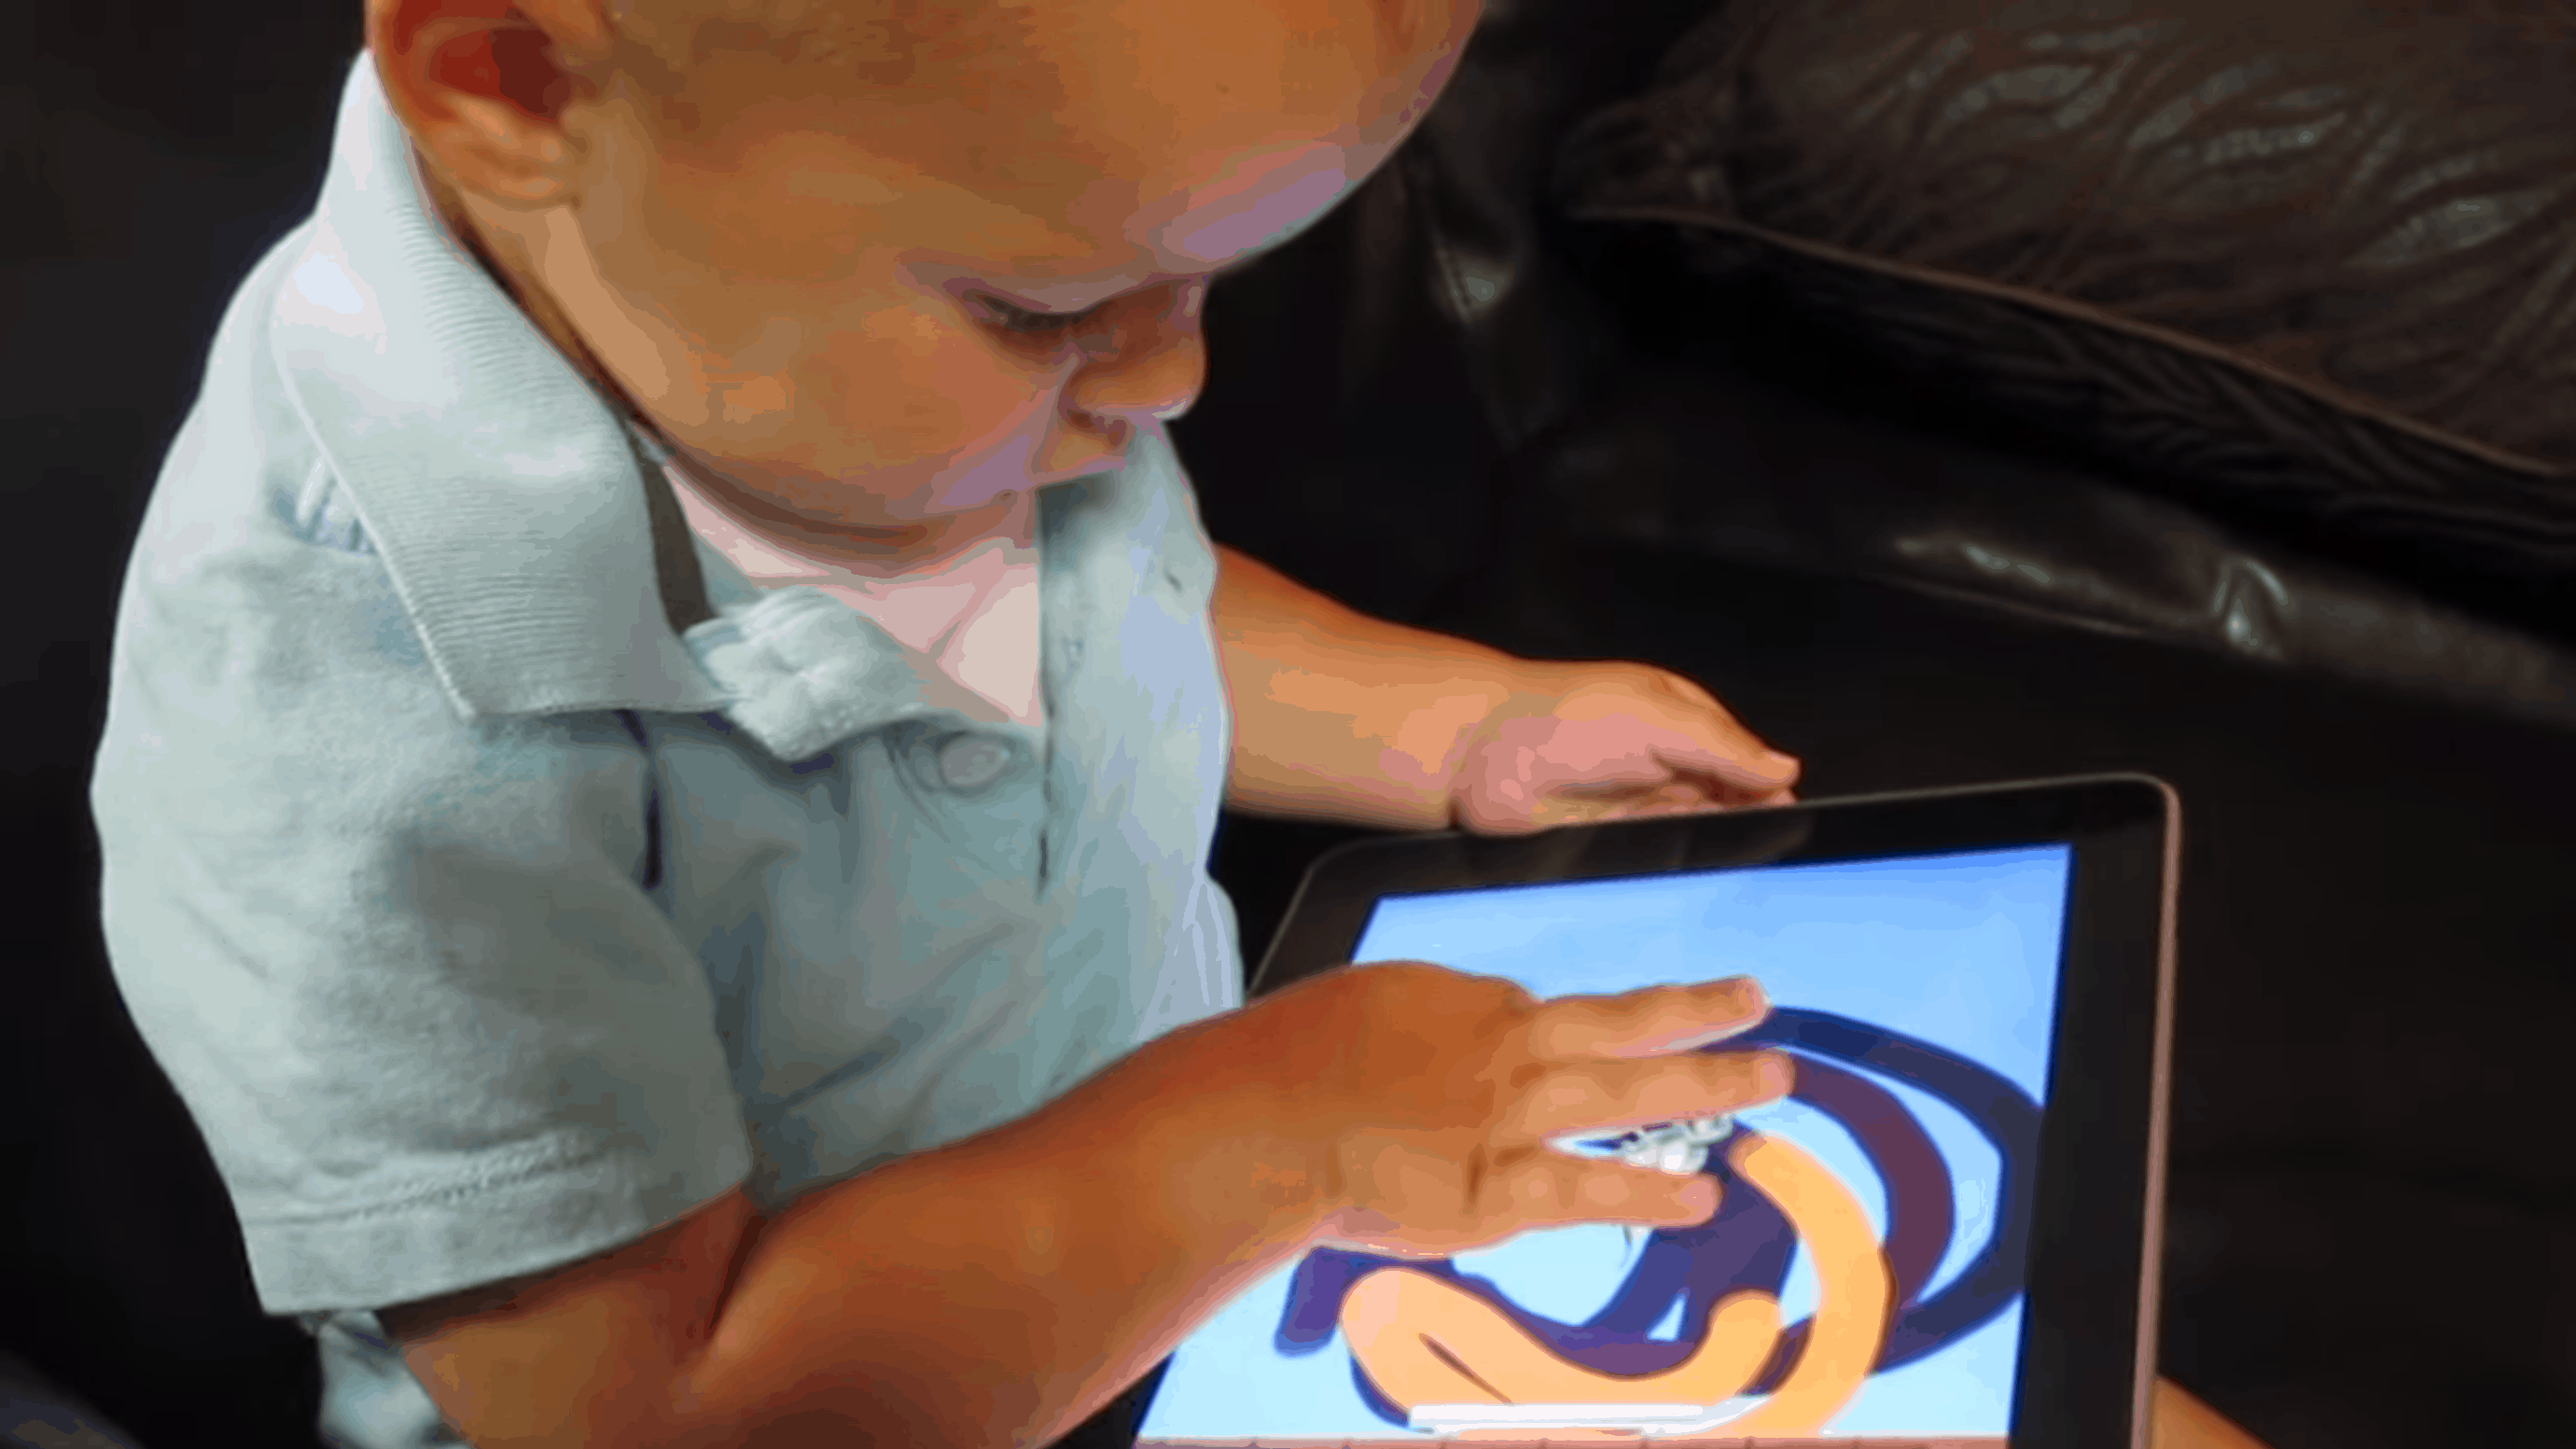 2-Year-Old Uses an iPad